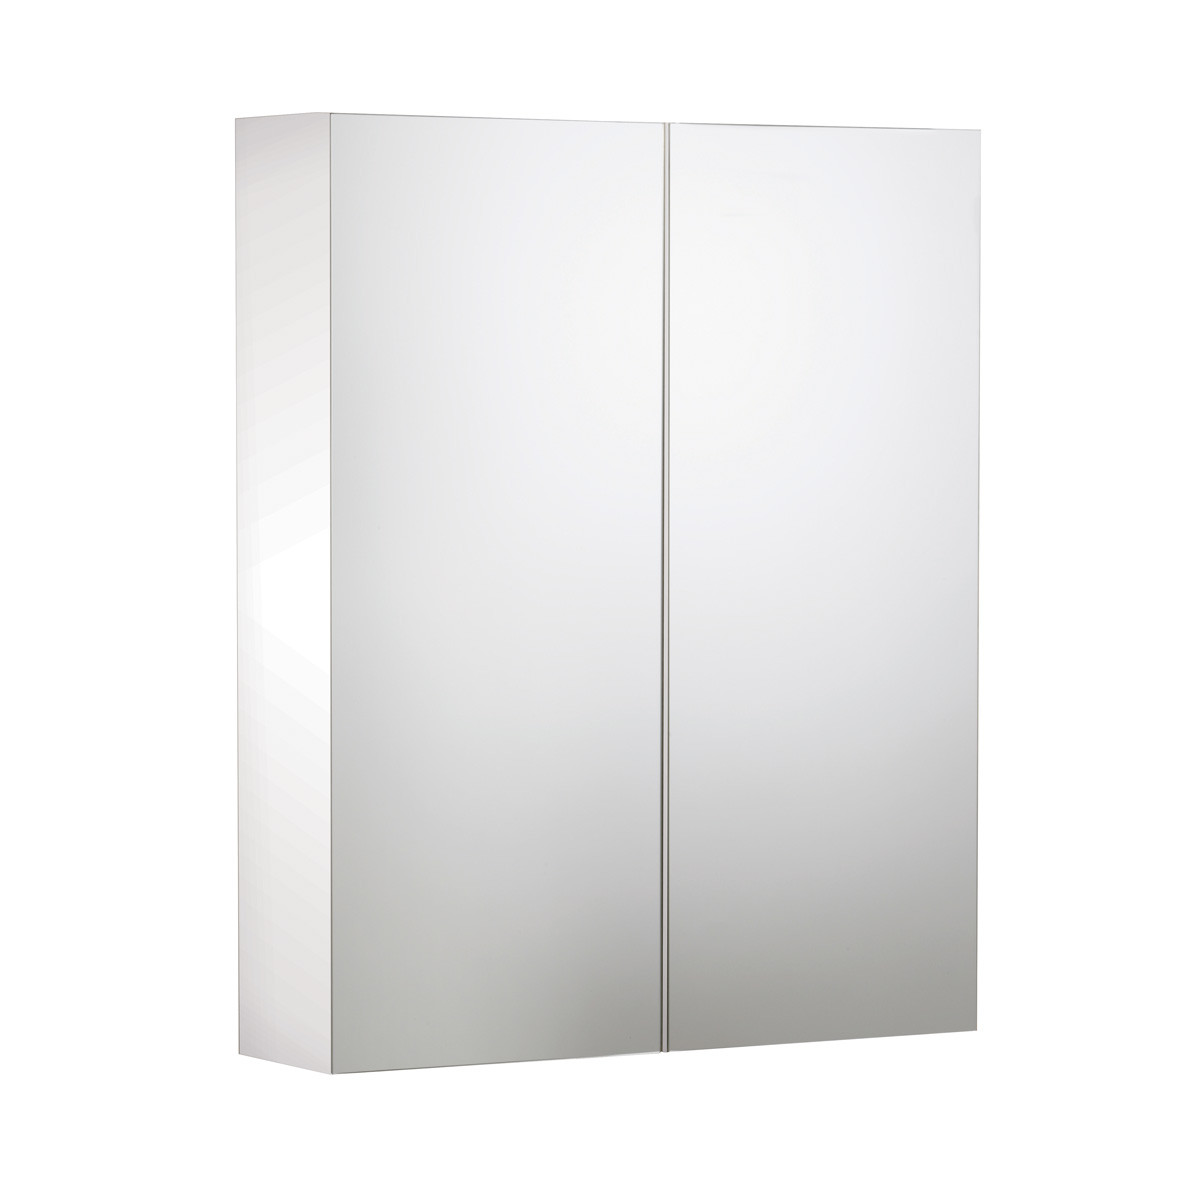 low priced 20e50 2bb3c Roper Rhodes Signatures 600mm Bathroom Cabinet, White Finish